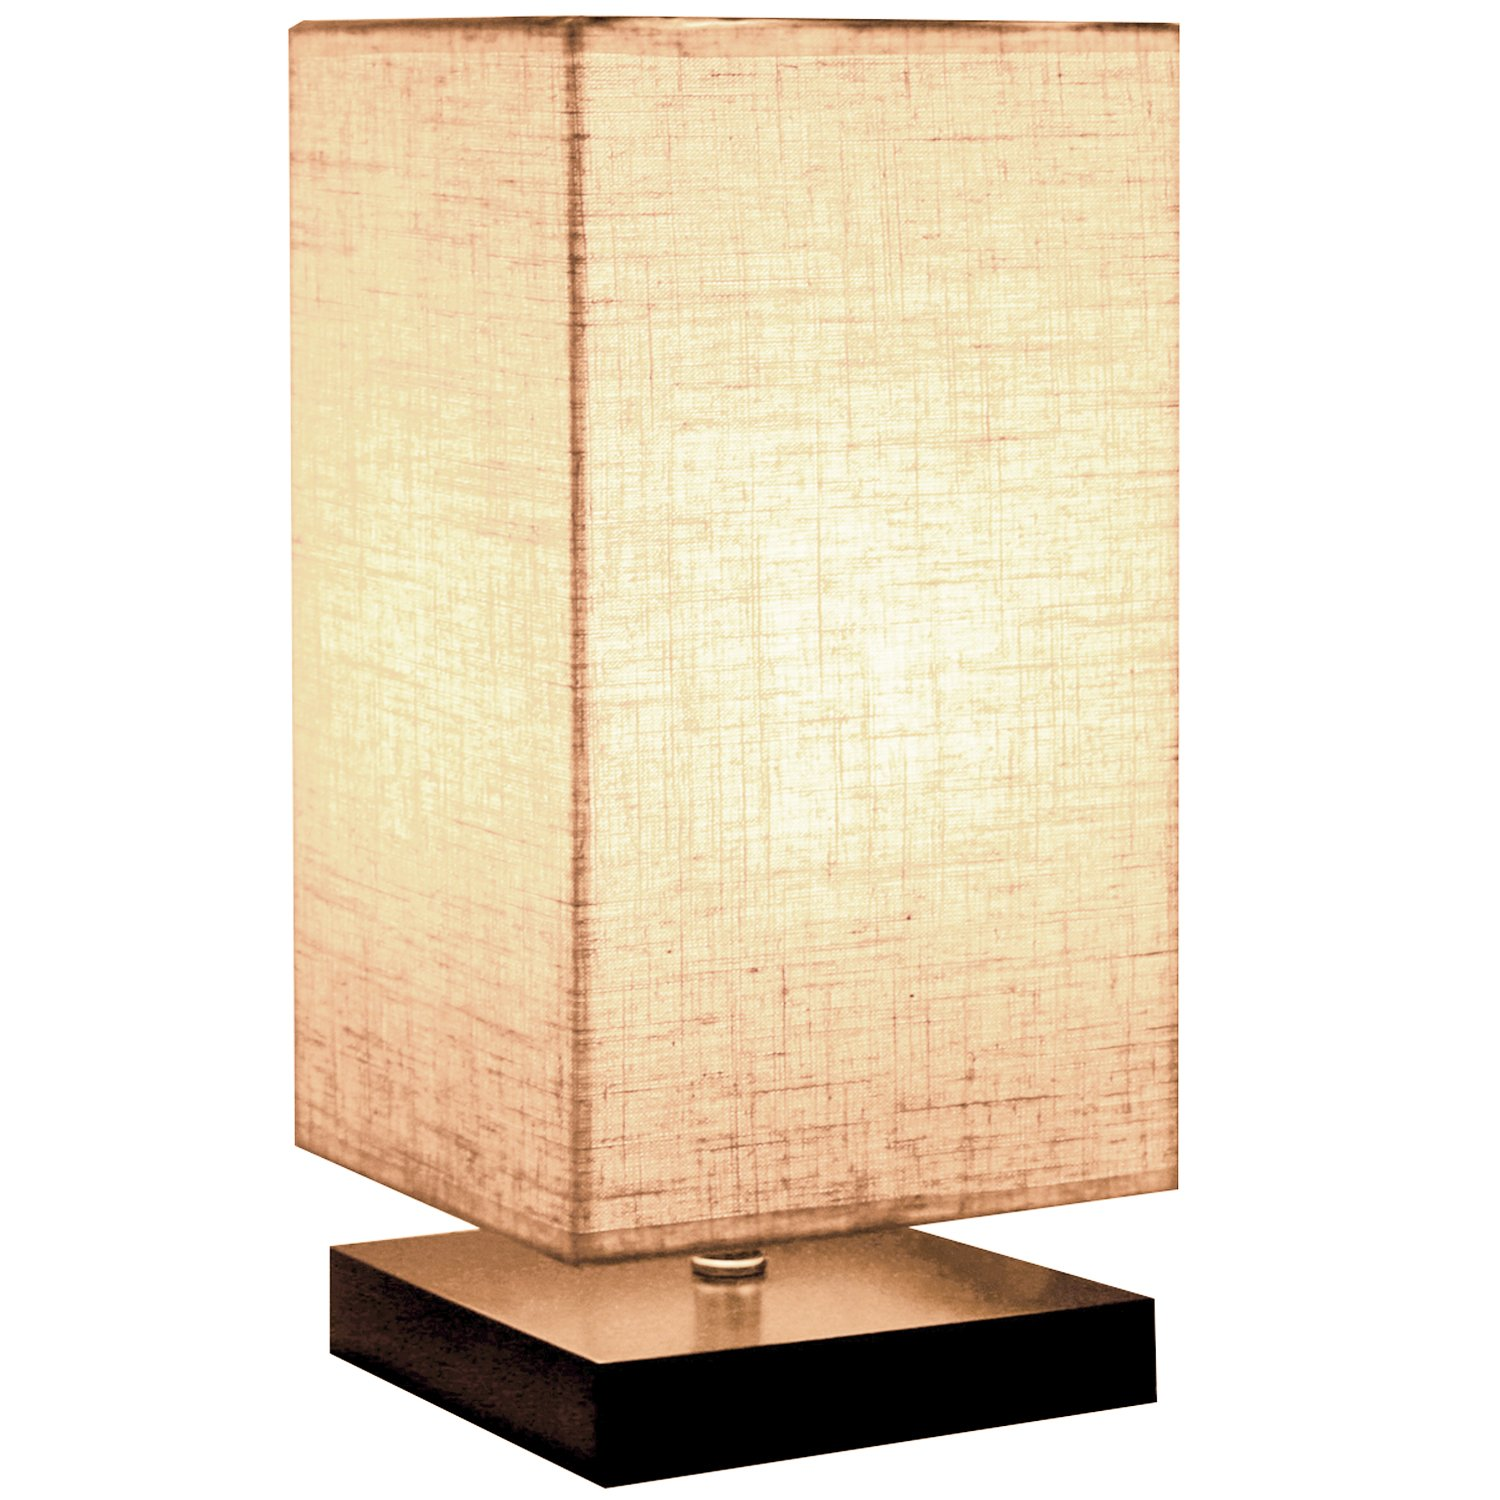 Minerva Minimalist Solid Wood Table Lamp, Bedside Desk Lamps, Nightstand Lamp with Linen Fabric Shade for Bedroom, Living Room (Square)